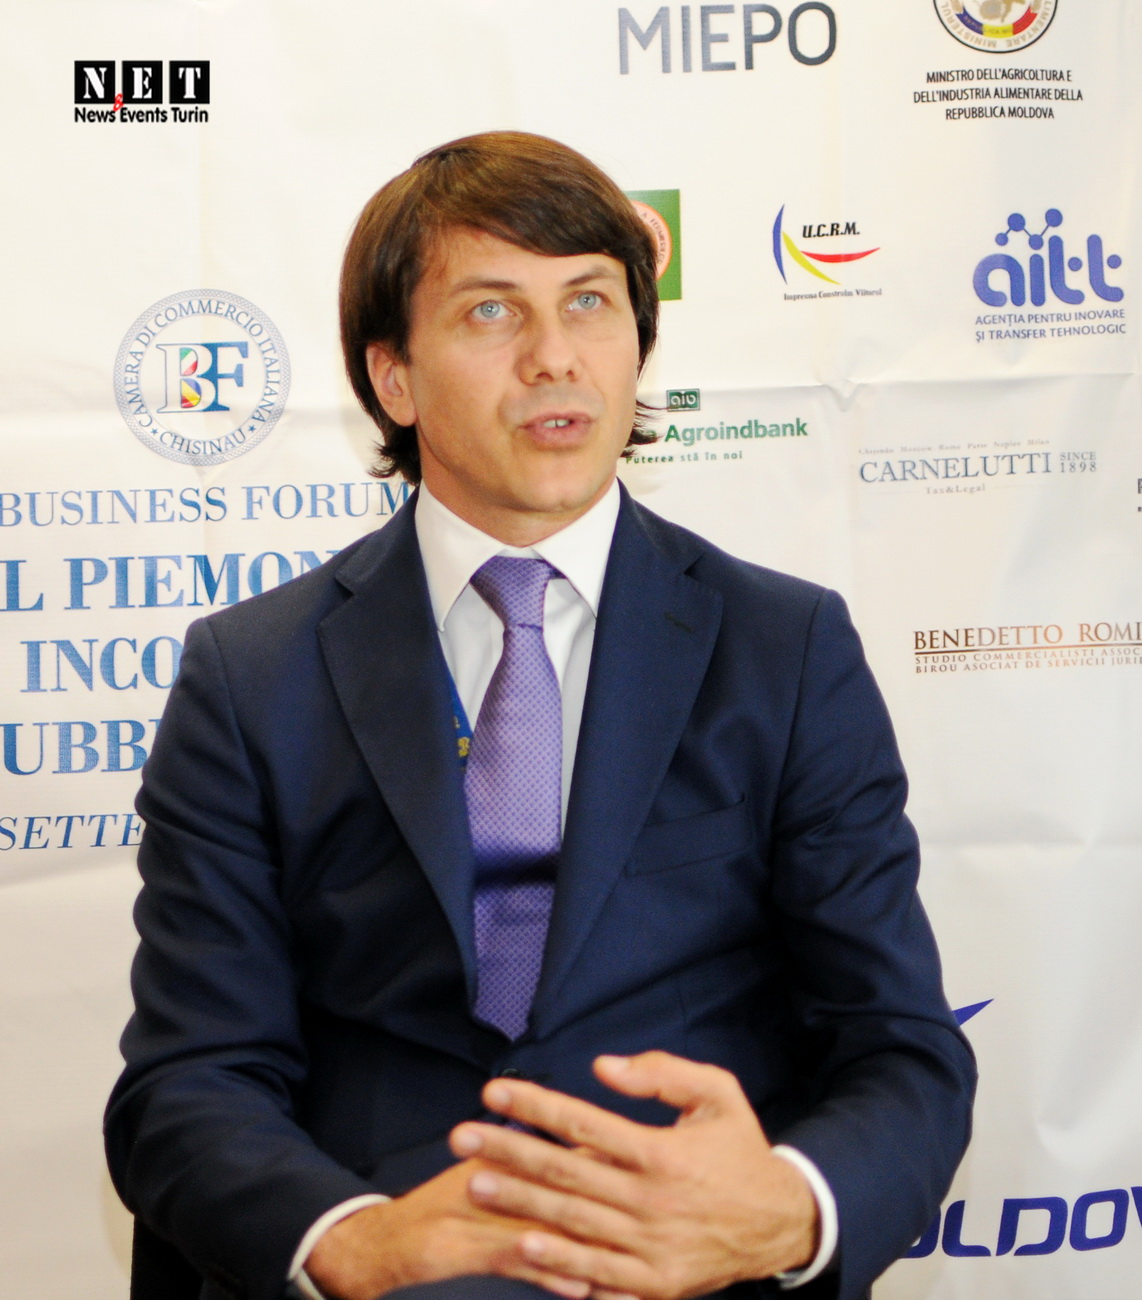 Oleg_Efrim_Business_Forum_Torino_Italia_